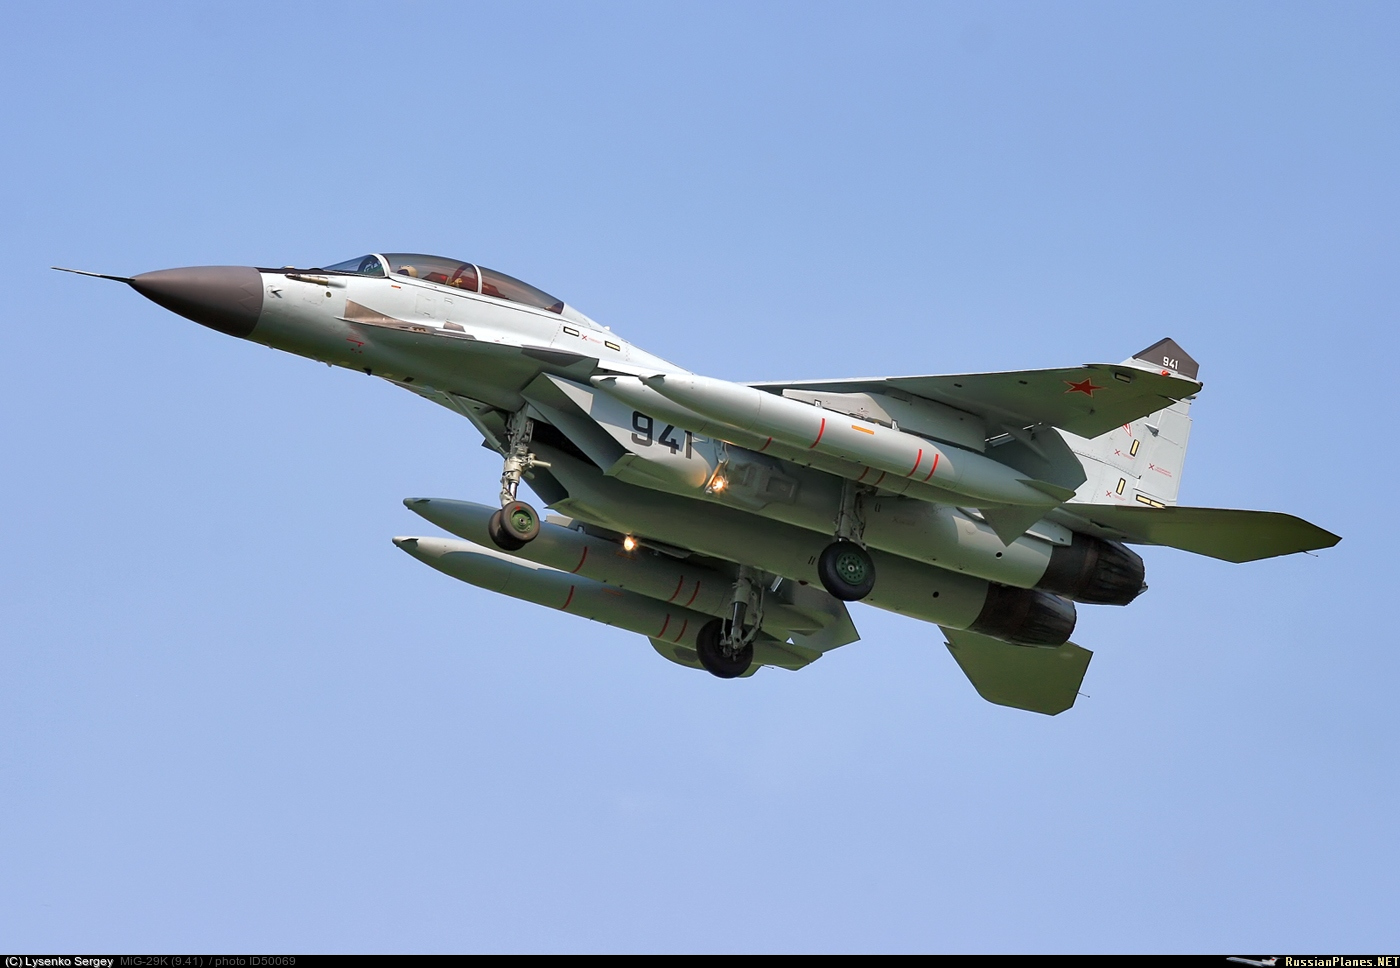 http://russianplanes.net/images/to51000/050069.jpg